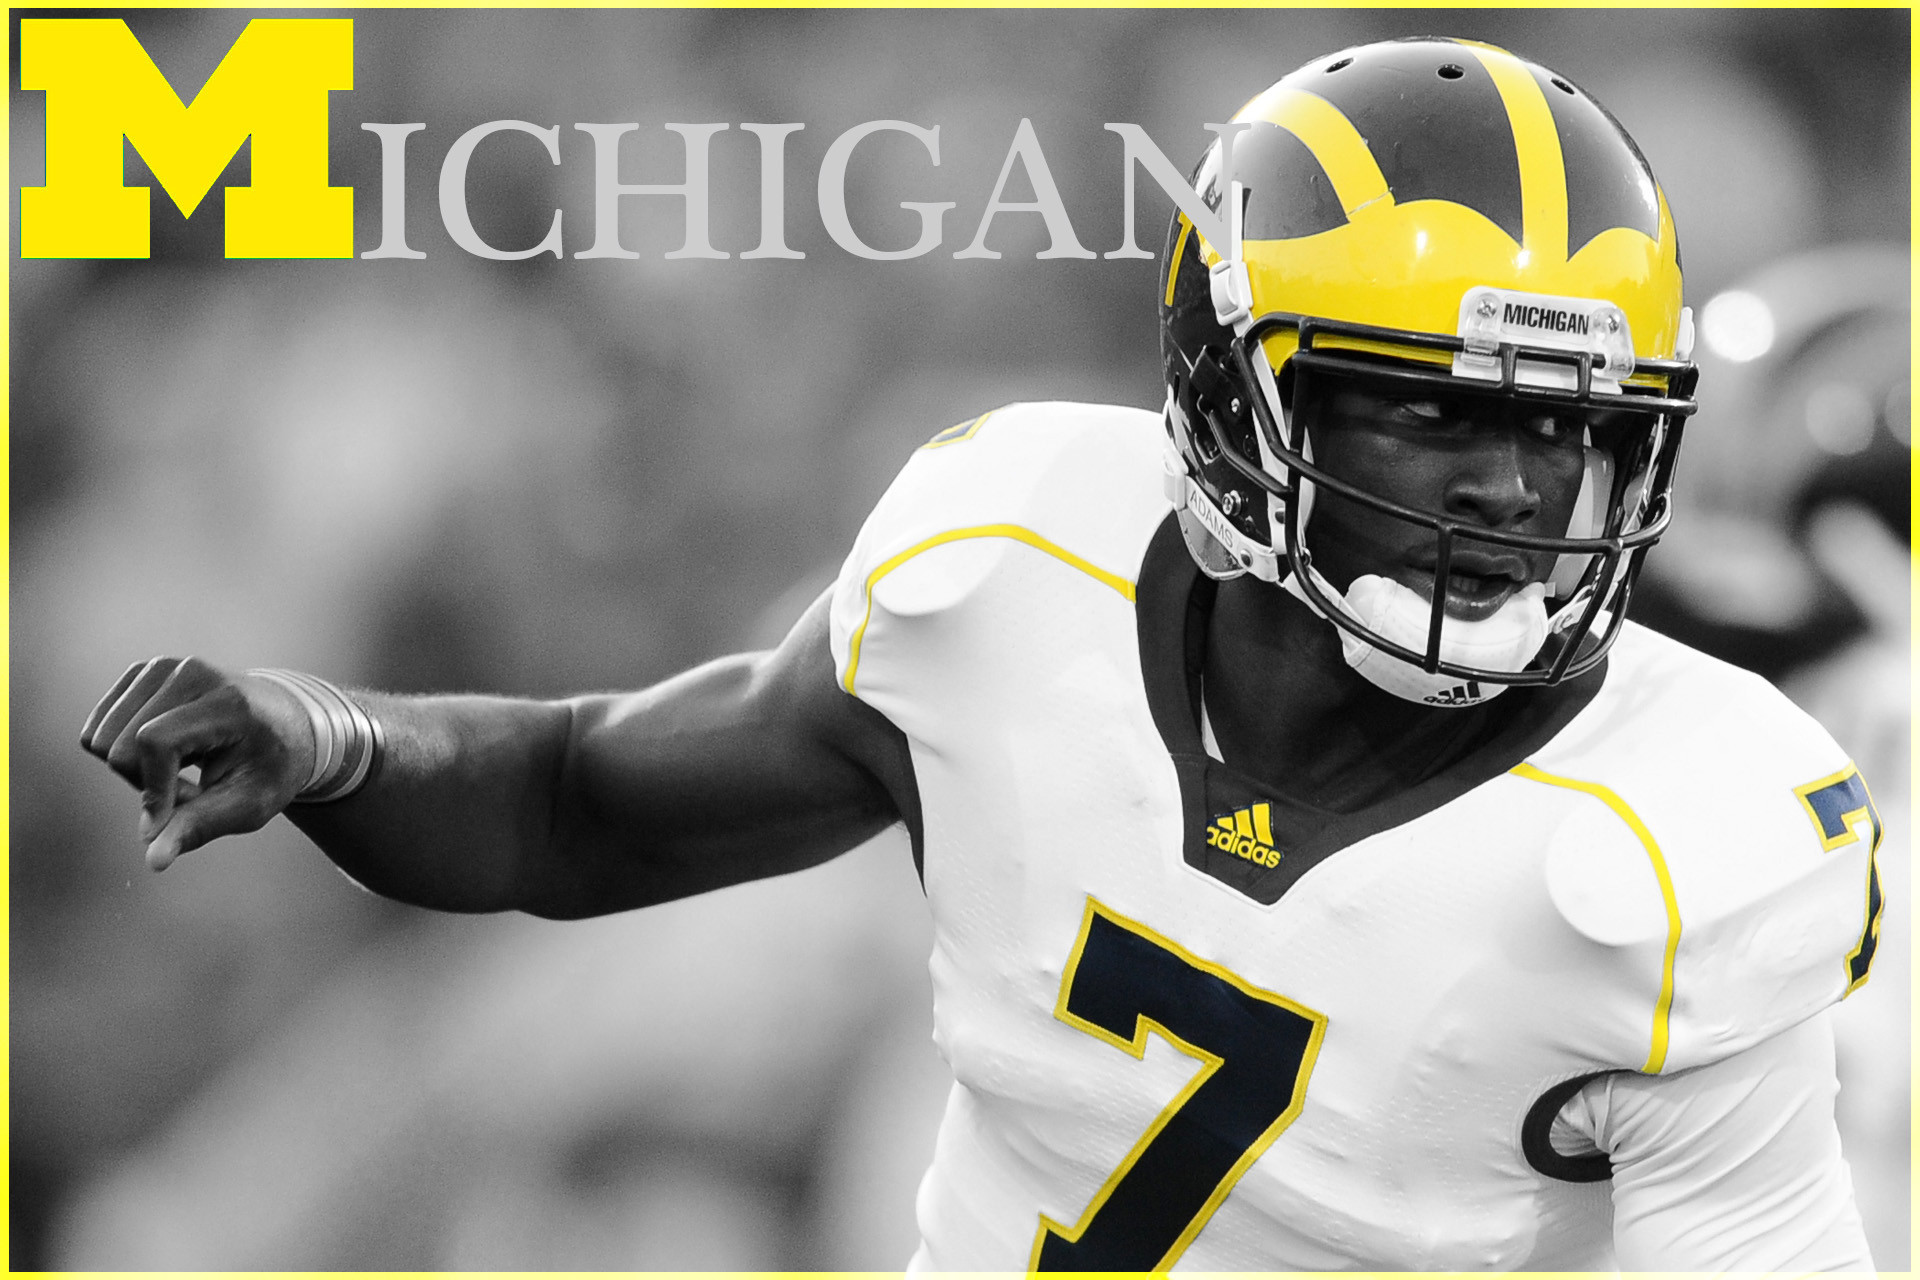 1920x1280 Michigan Wolverines iPhone Wallpapers Colleges in Michigan Michigan Wallpapers  Wallpapers)